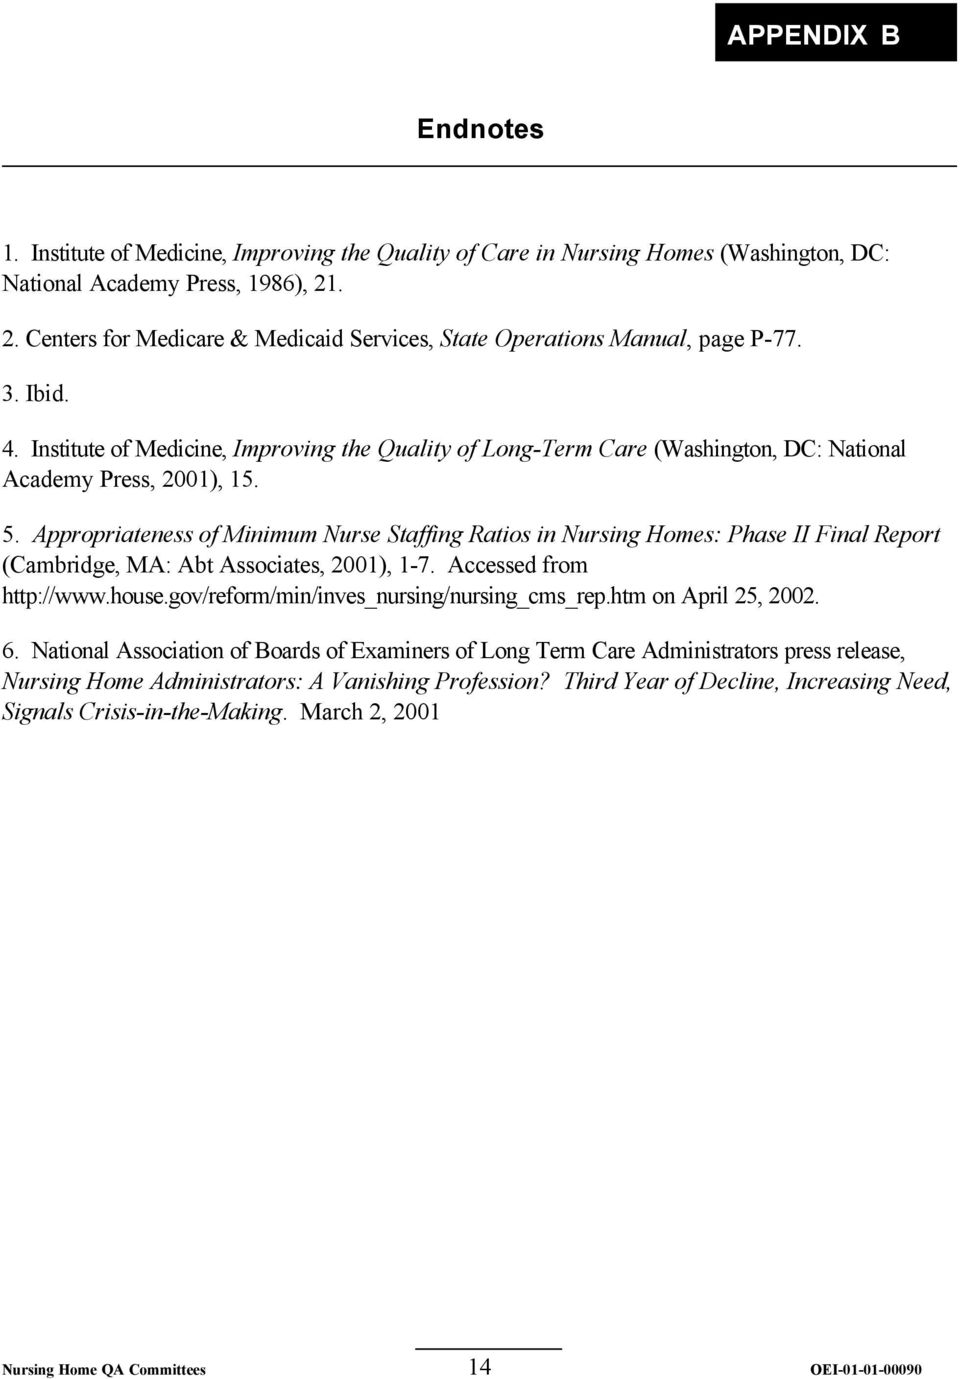 Institute of Medicine, Improving the Quality of Long-Term Care (Washington, DC: National Academy Press, 2001), 15. 5.